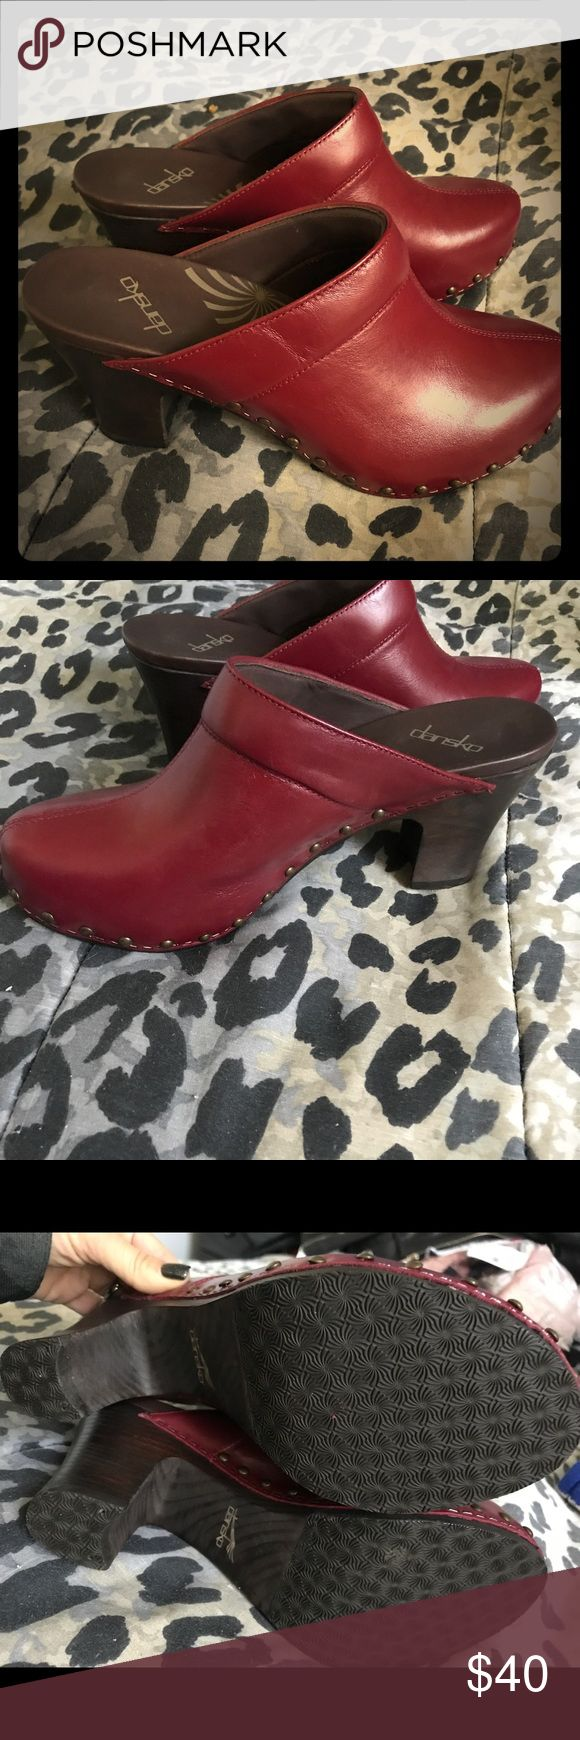 Flash Sale! NWOB Dansko leather mules red size 10 New without box, deep red genuine leather Dansko mules in size 40 (10) Dansko Shoes Mules & Clogs